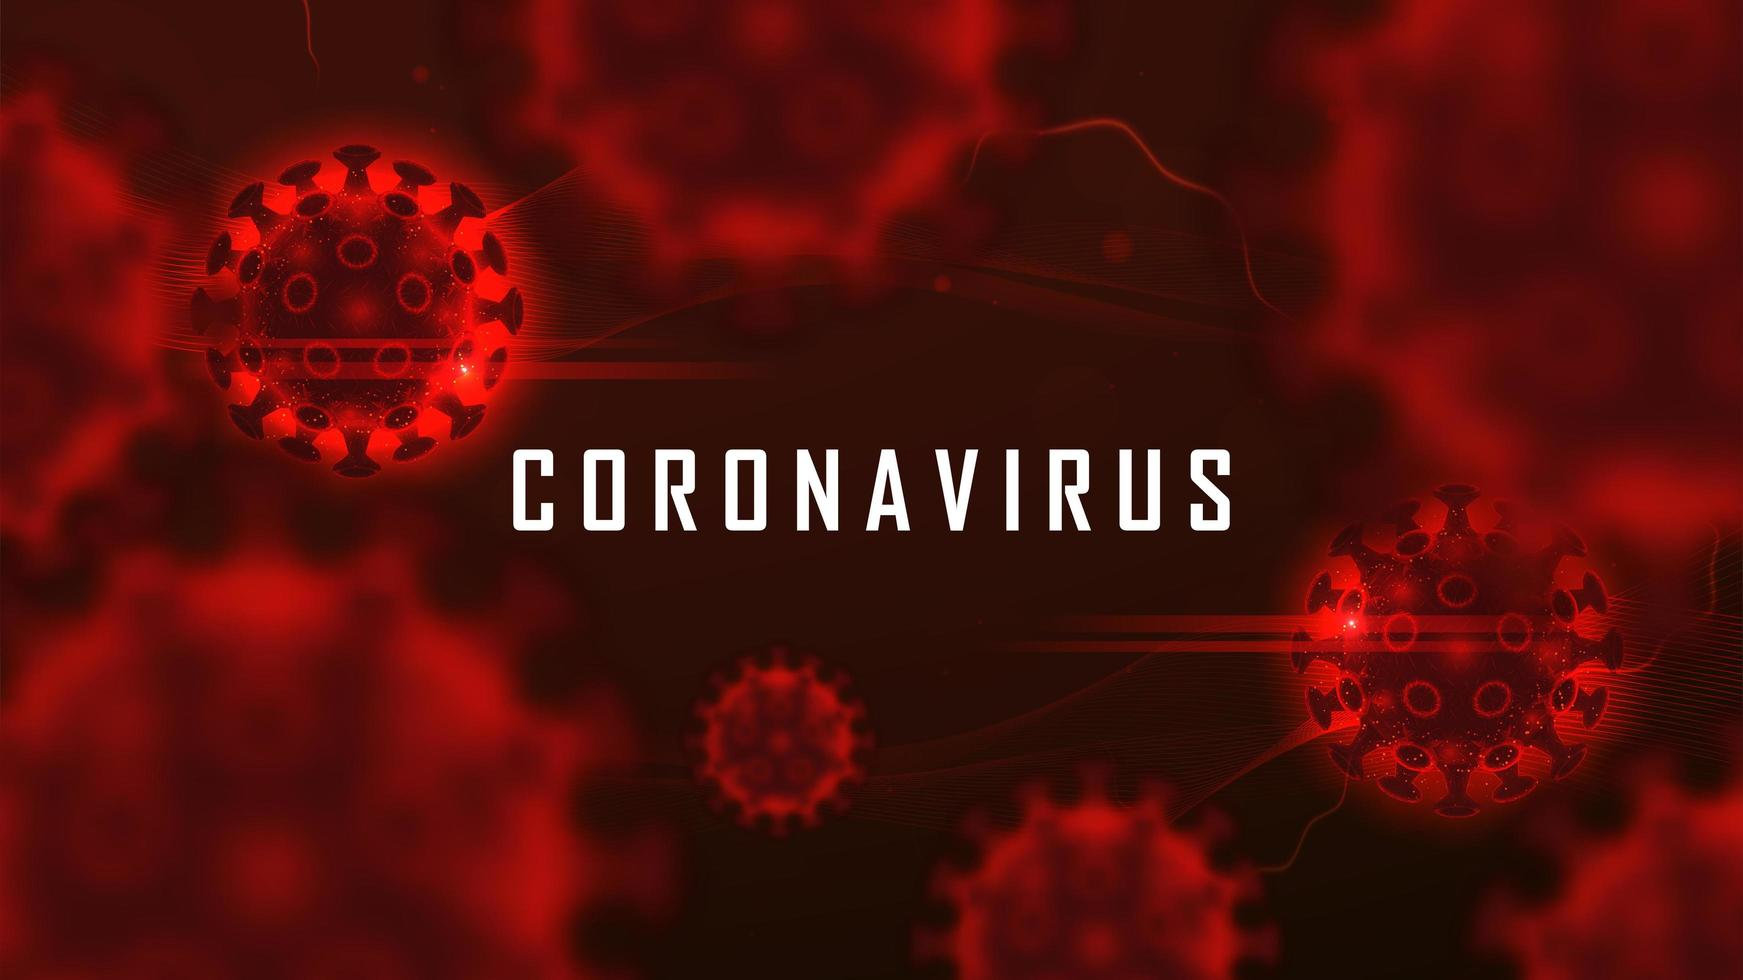 Coronavirus cell structure floating in blood vector